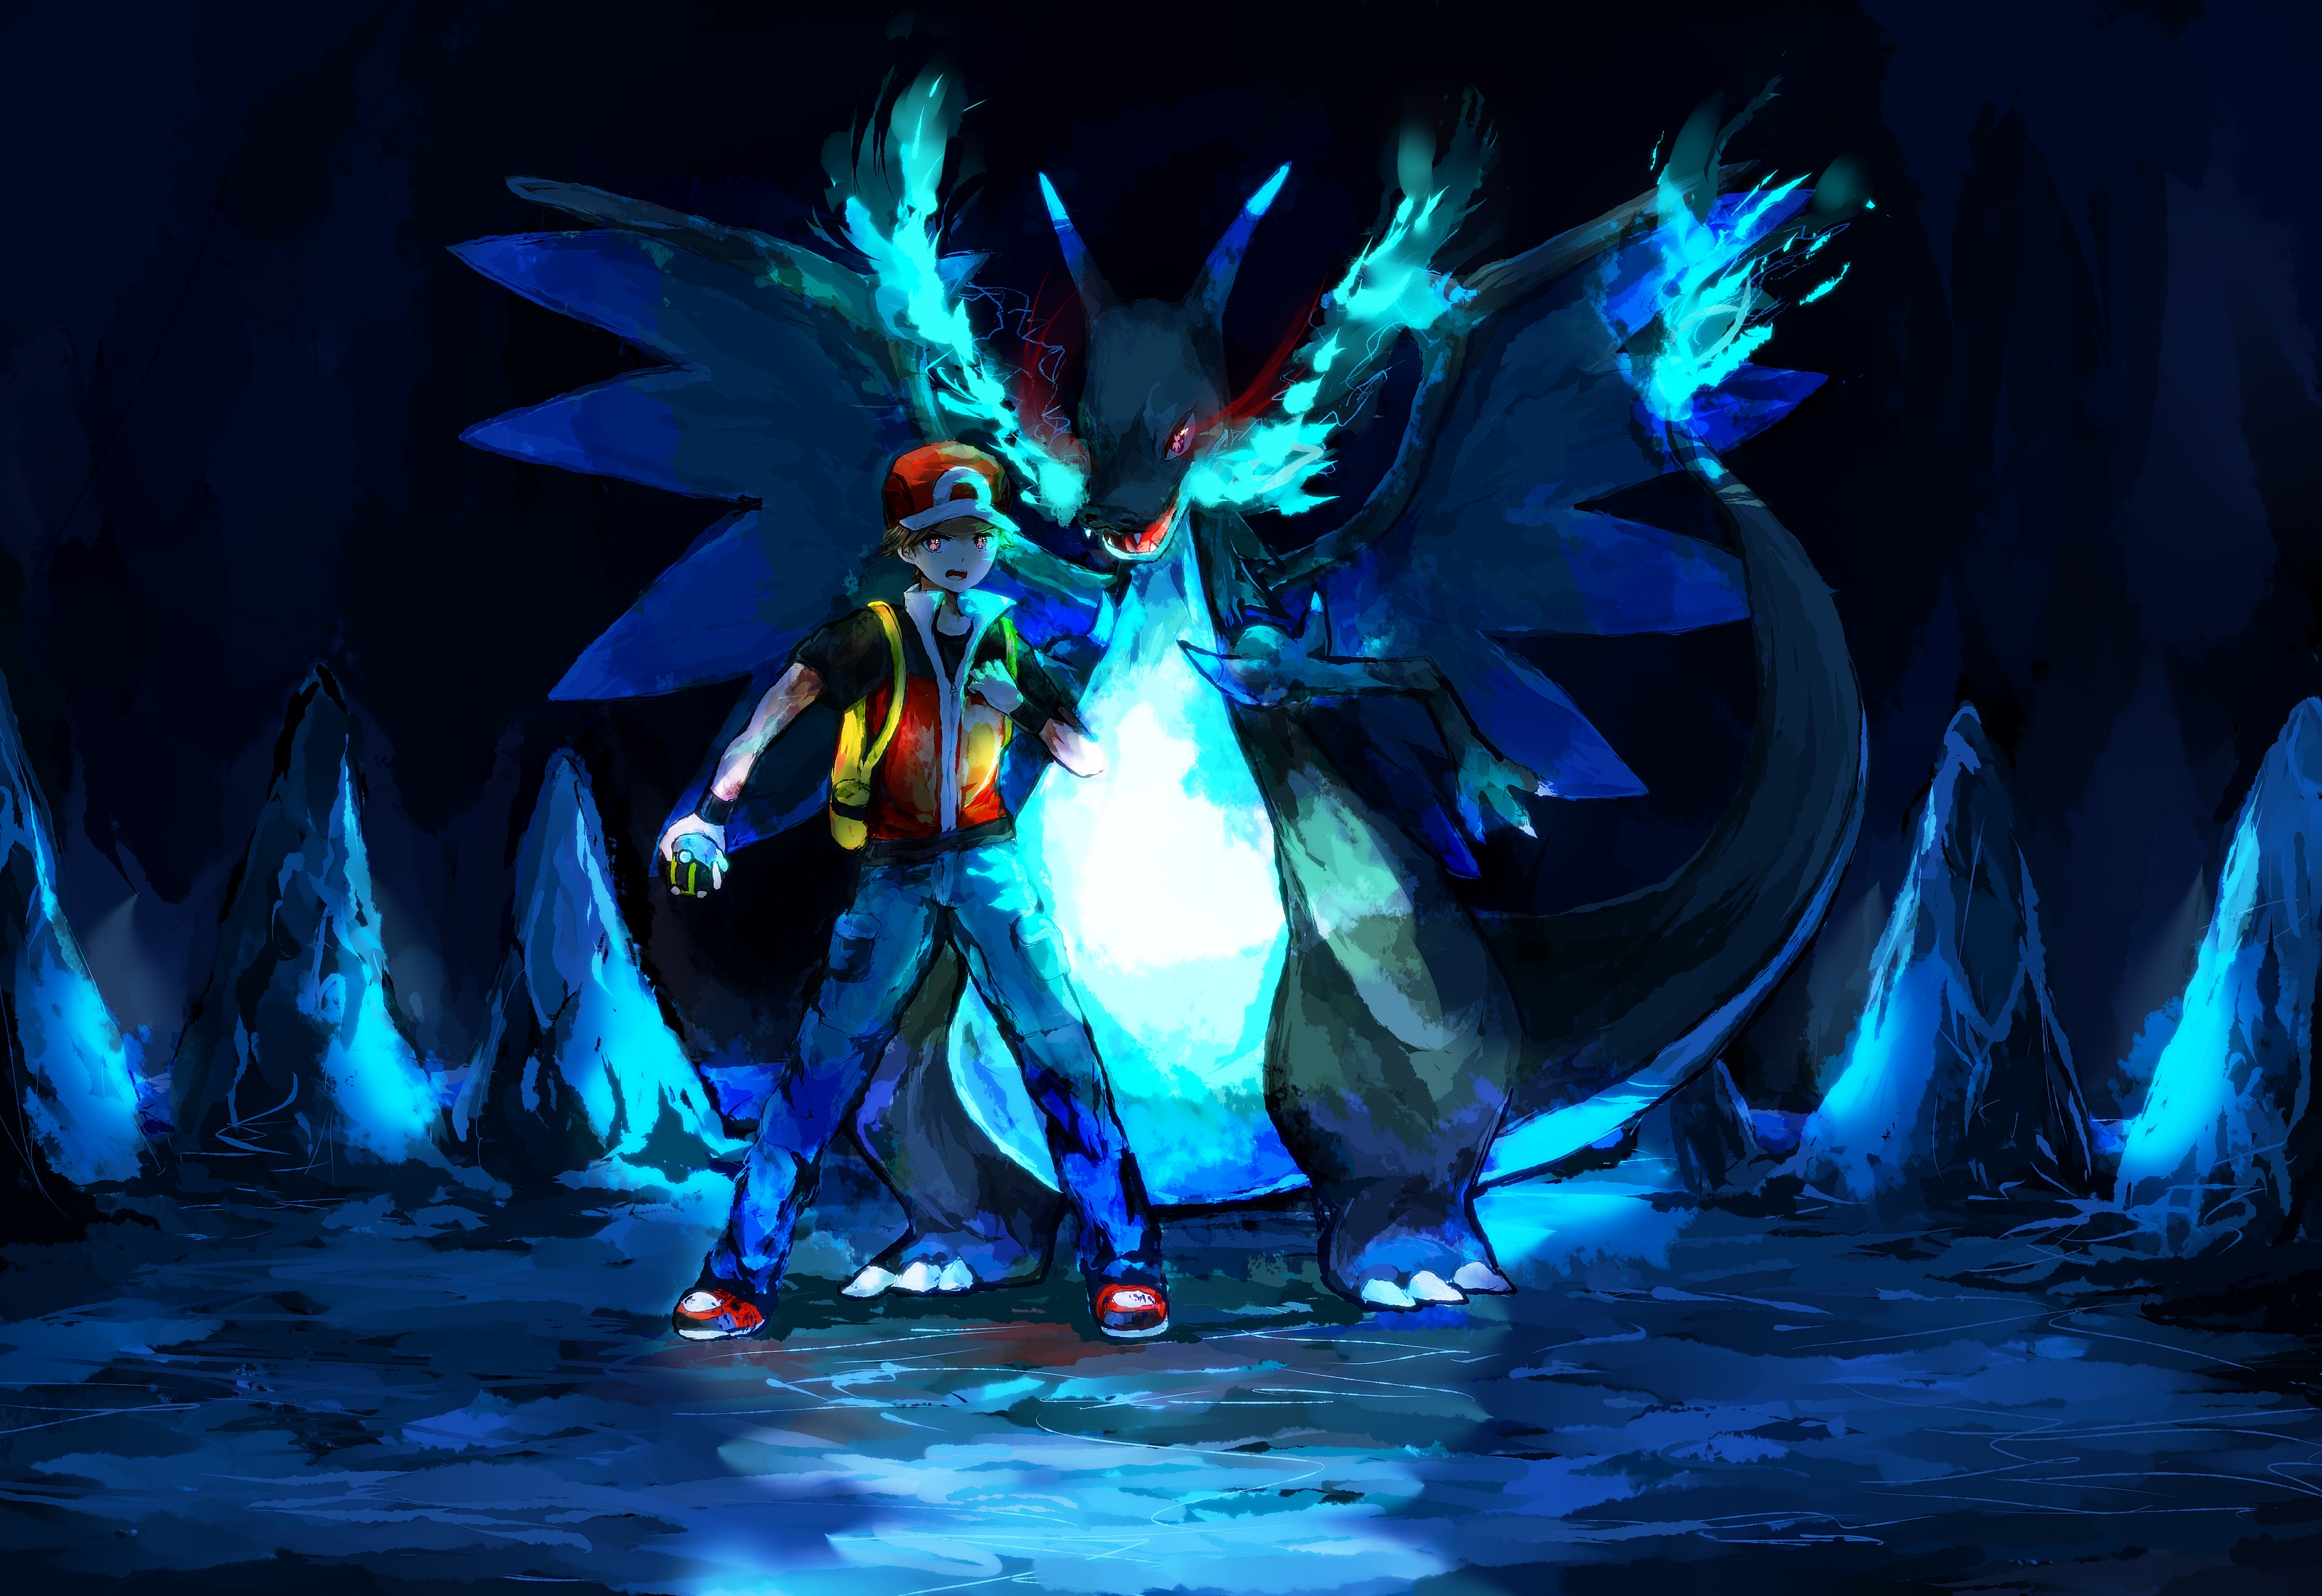 Pokemon Trainer Red Vs Blue Wallpaper Posted By Michelle Tremblay